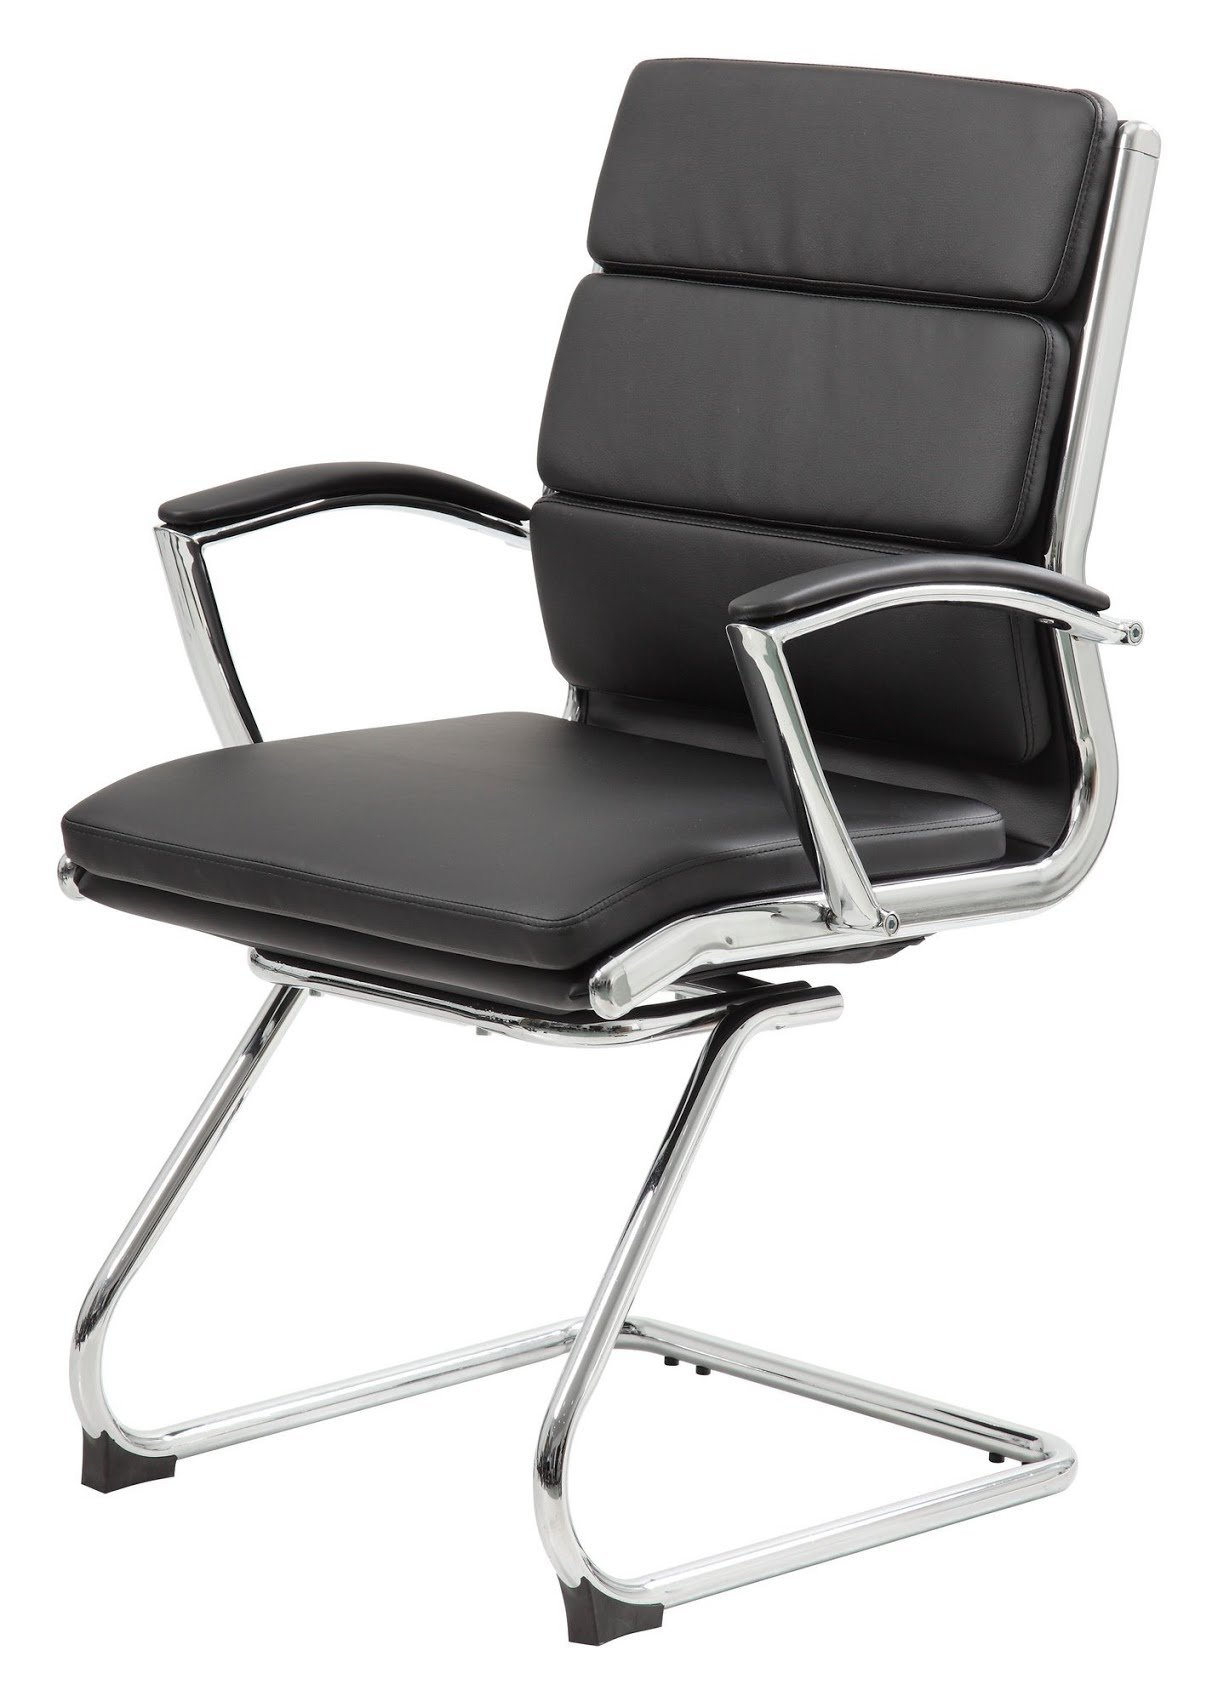 Metal office chairs Leather Adele Desk Chair Herman Miller Desk Chairs Without Wheels Visual Hunt